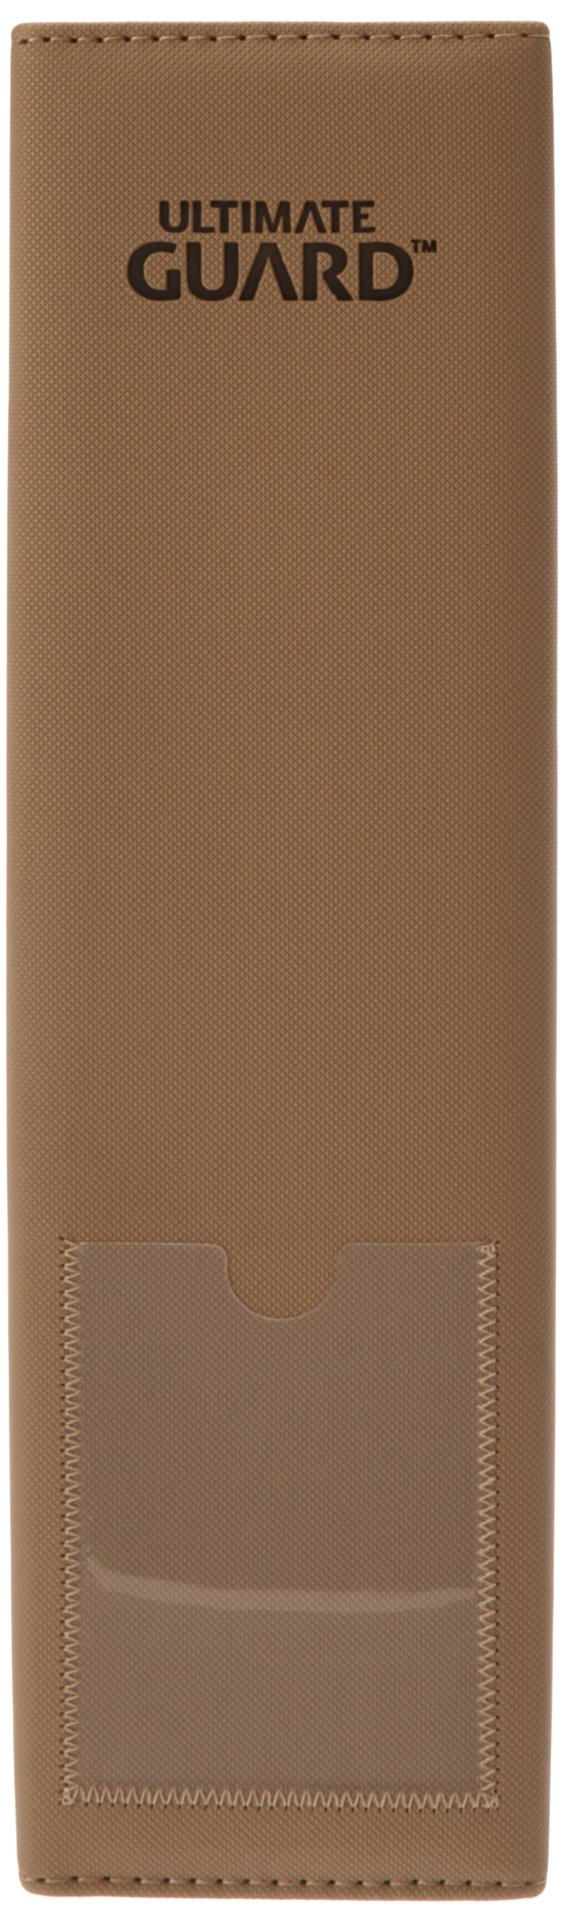 Ultimate Guard 3R Binder Xenoskin Card Sleeves, Sand, Large by Ultimate Guard (Image #2)